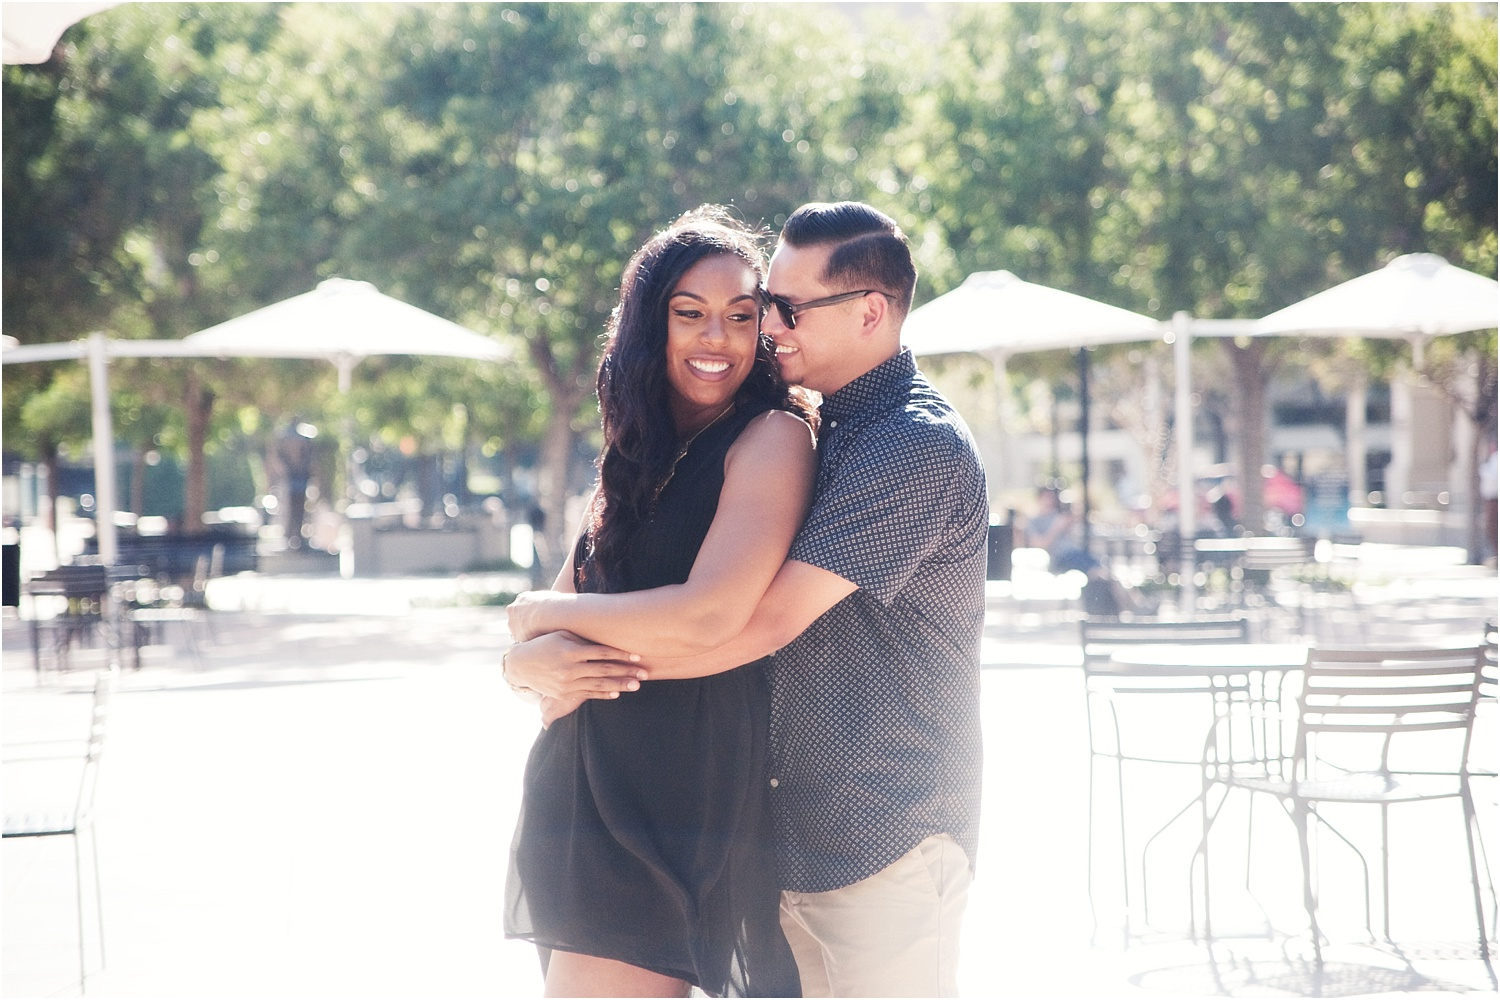 couple in black - How to do Portrait photography in Bright Midday Sun